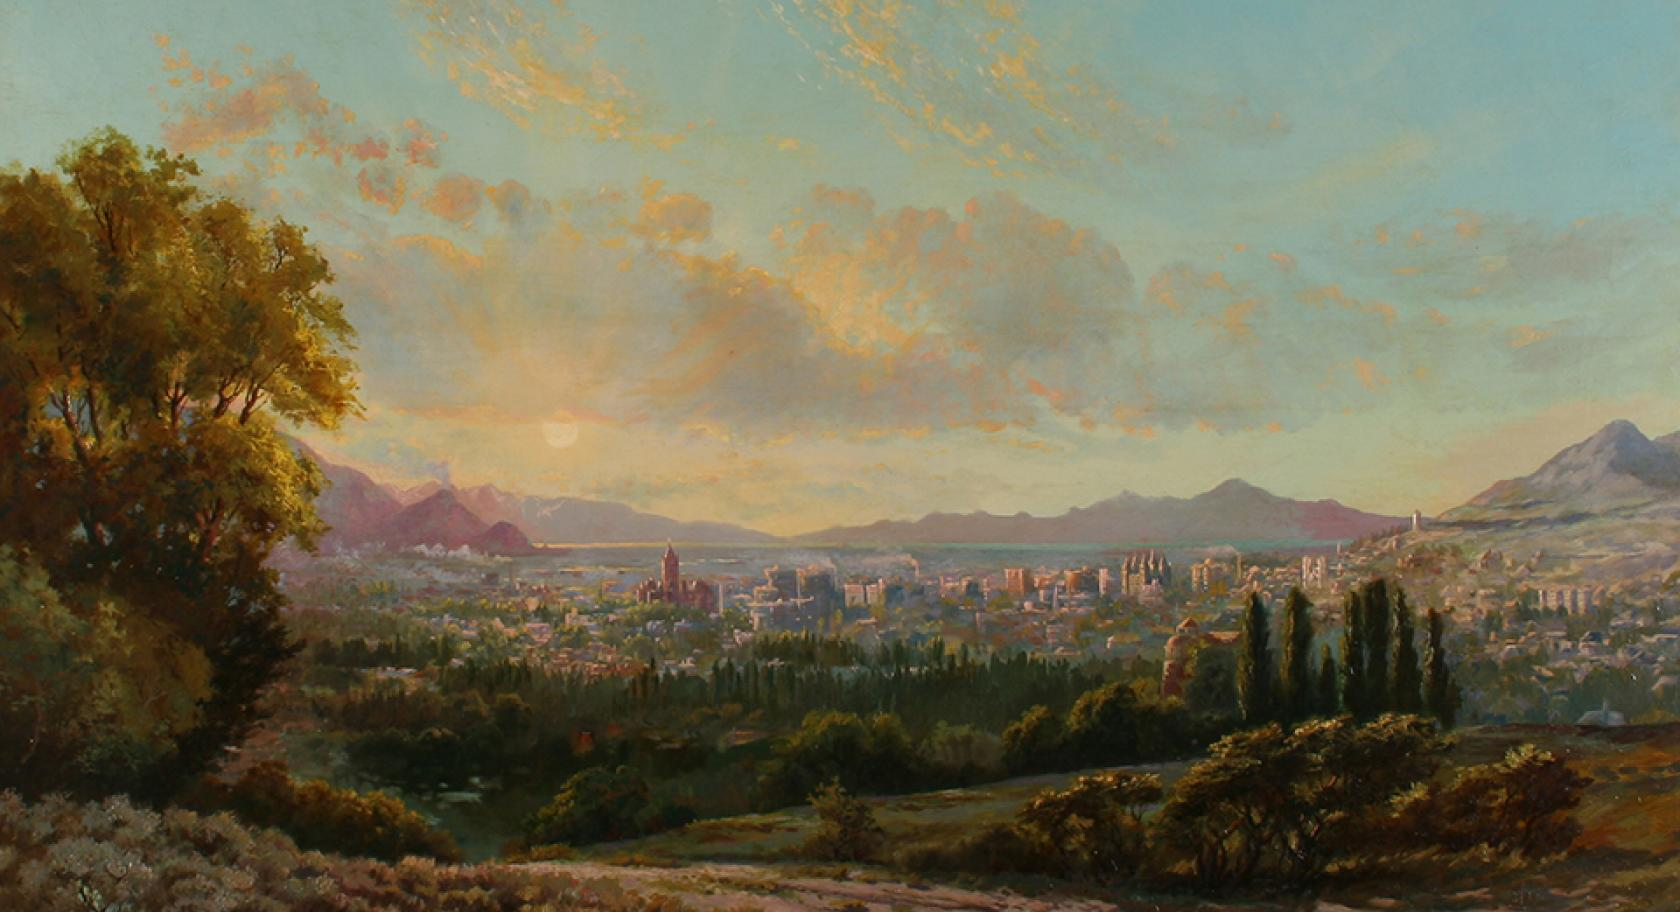 Henry L.A. Culmer, (American, 1854-1914), View of Salt Lake Valley, ca. 1911-1914, oil on canvas, gift of Joseph J. Palmer, Wayne G. Petty, the heirs O. Wood Moyle III and James H. Harwood by exchange, UMFA2011.18.1